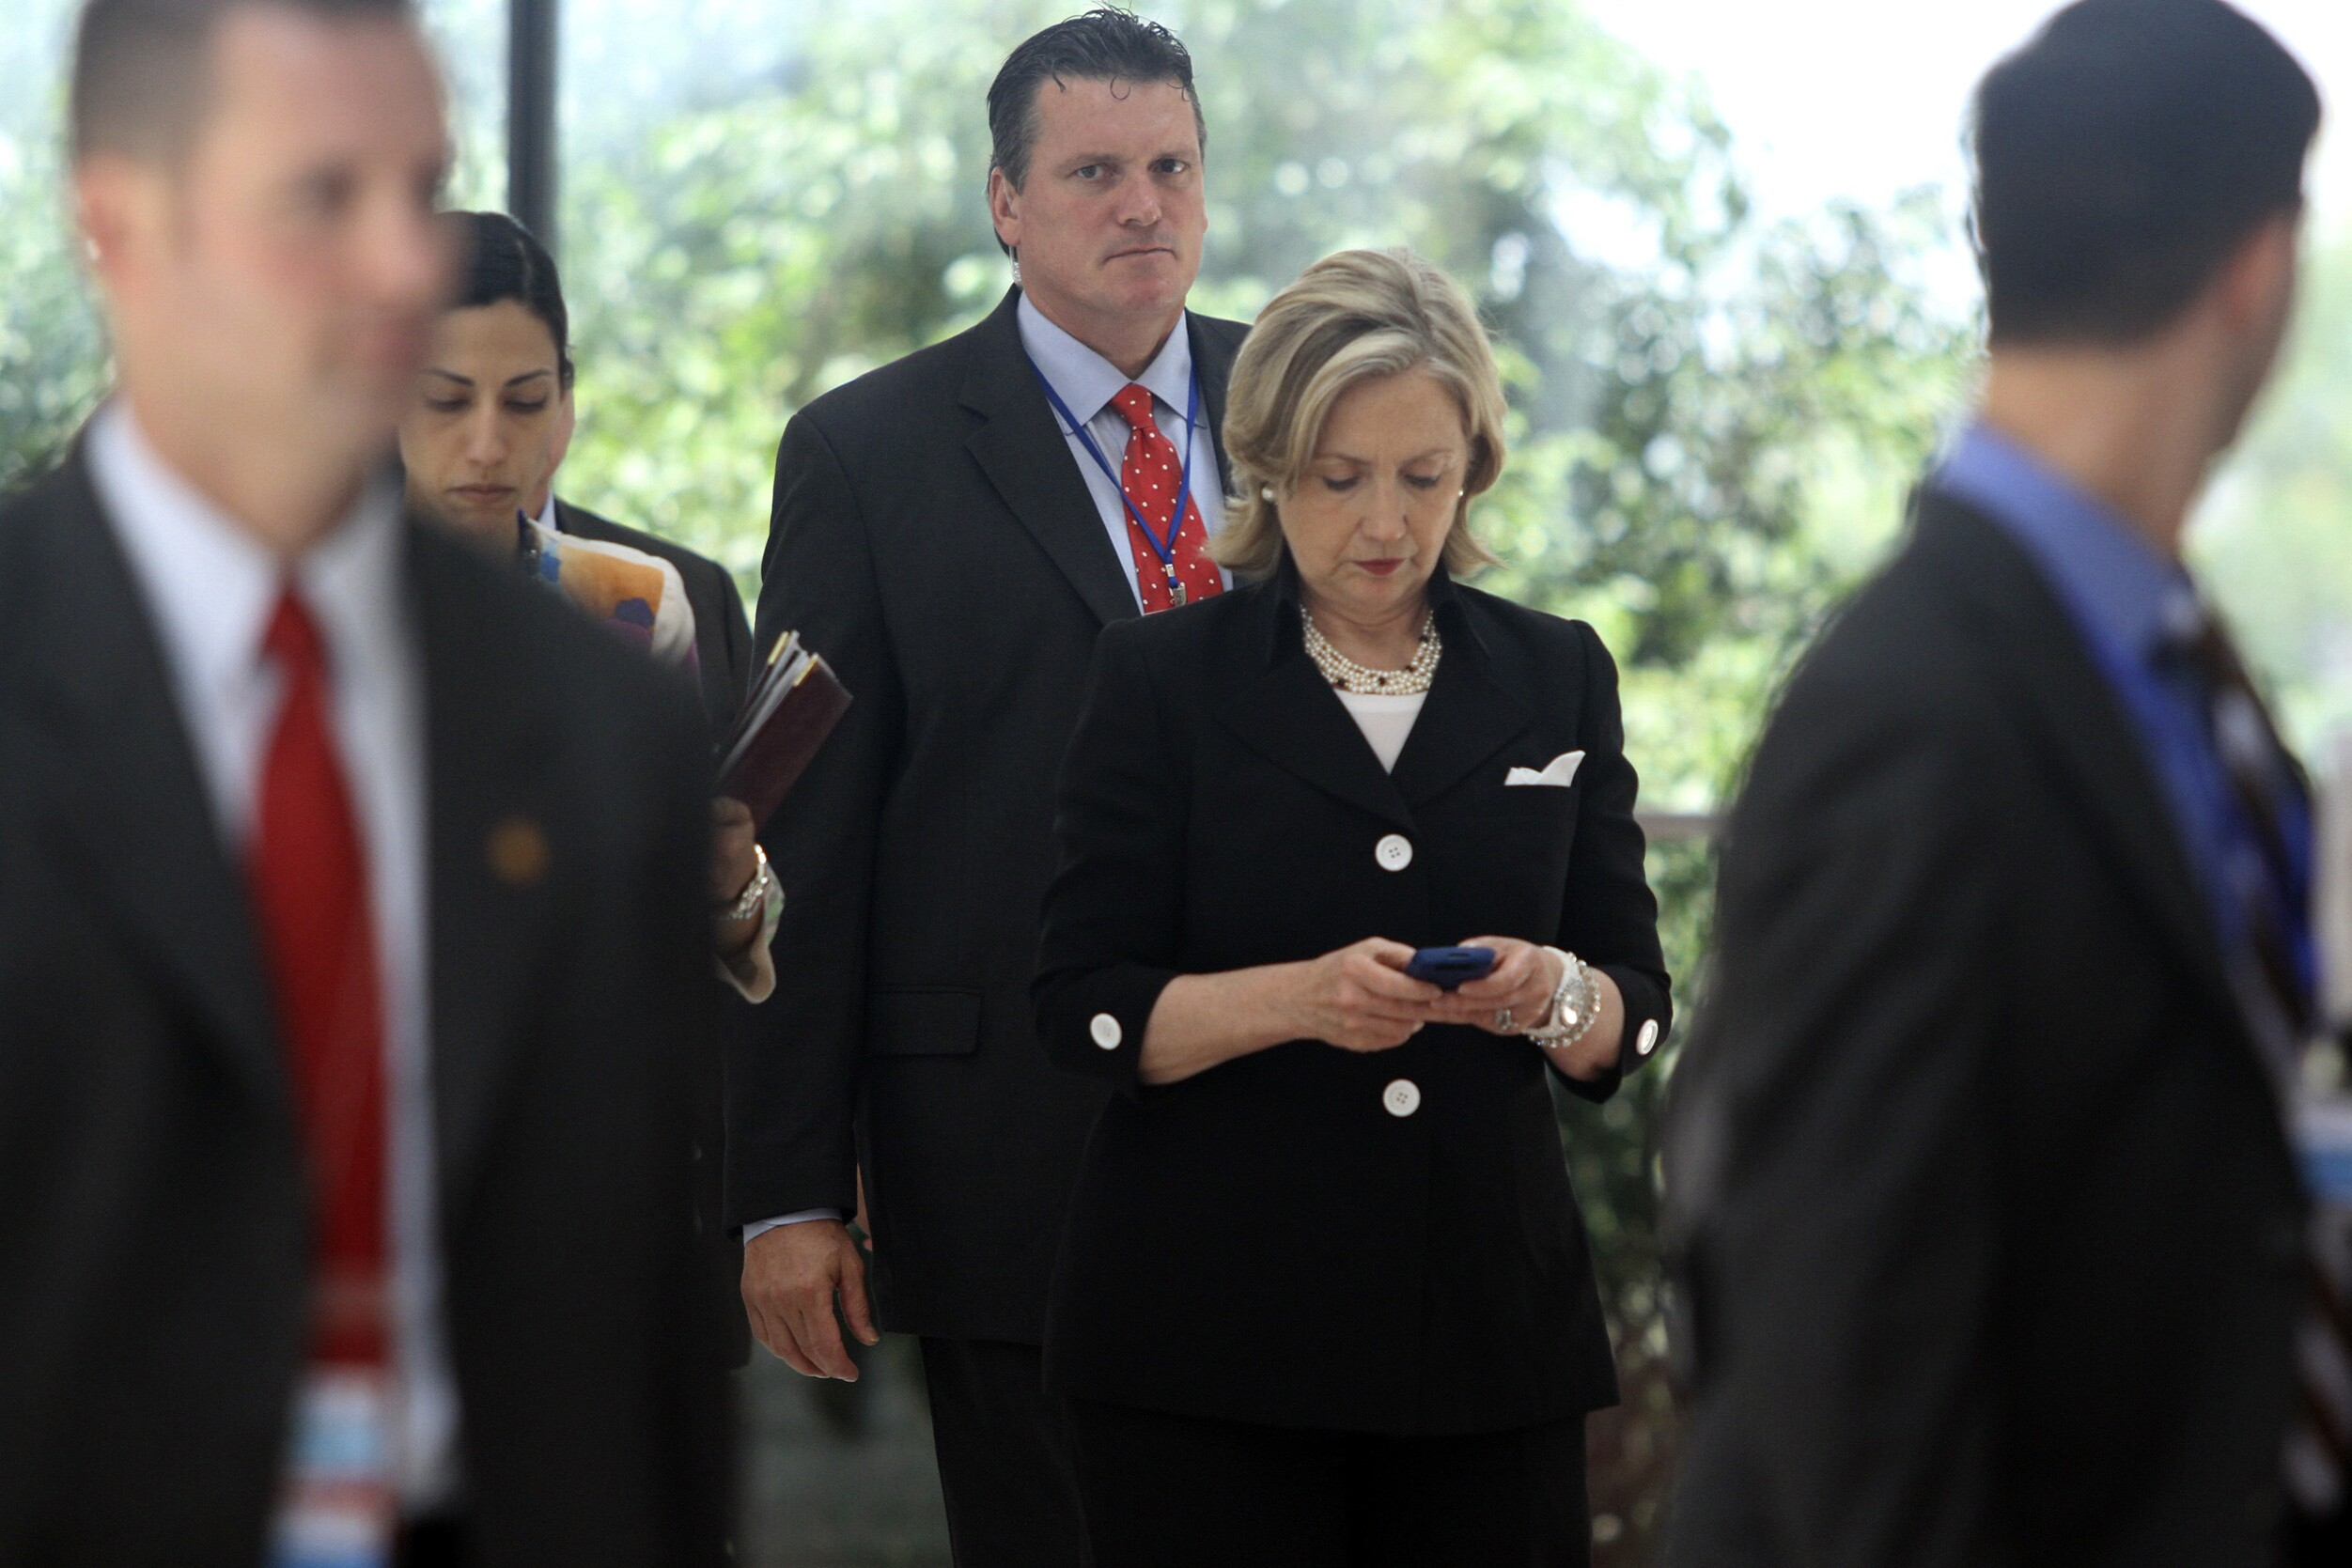 Docs show State Dept  advised Clinton against Blackberry use